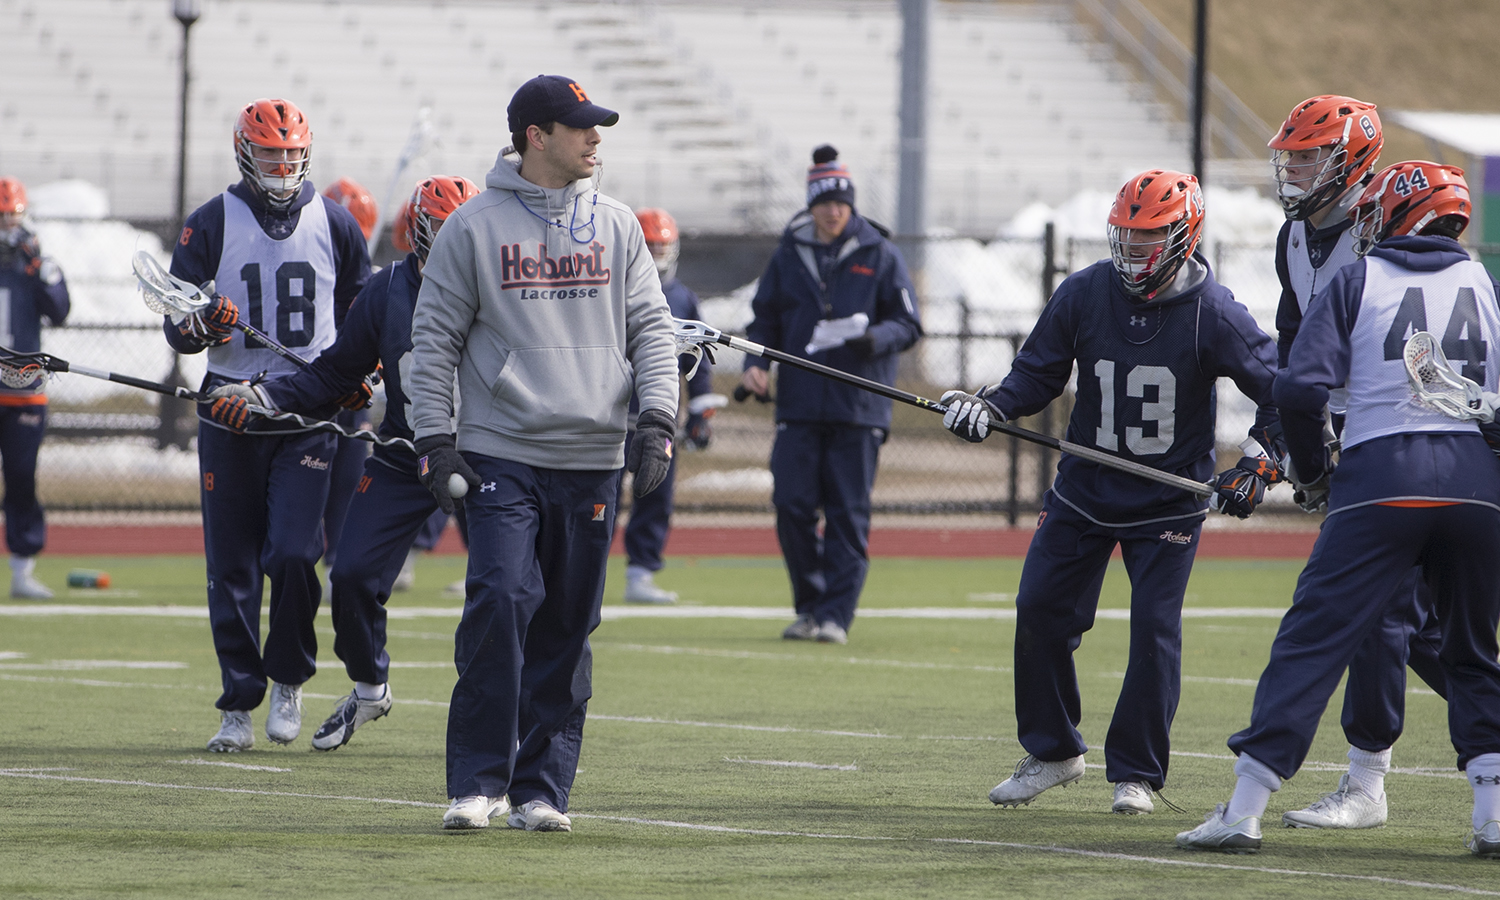 Hobart Lacrosse Head Coach Greg Raymond runs a practice on Boswell Field on Tuesday.